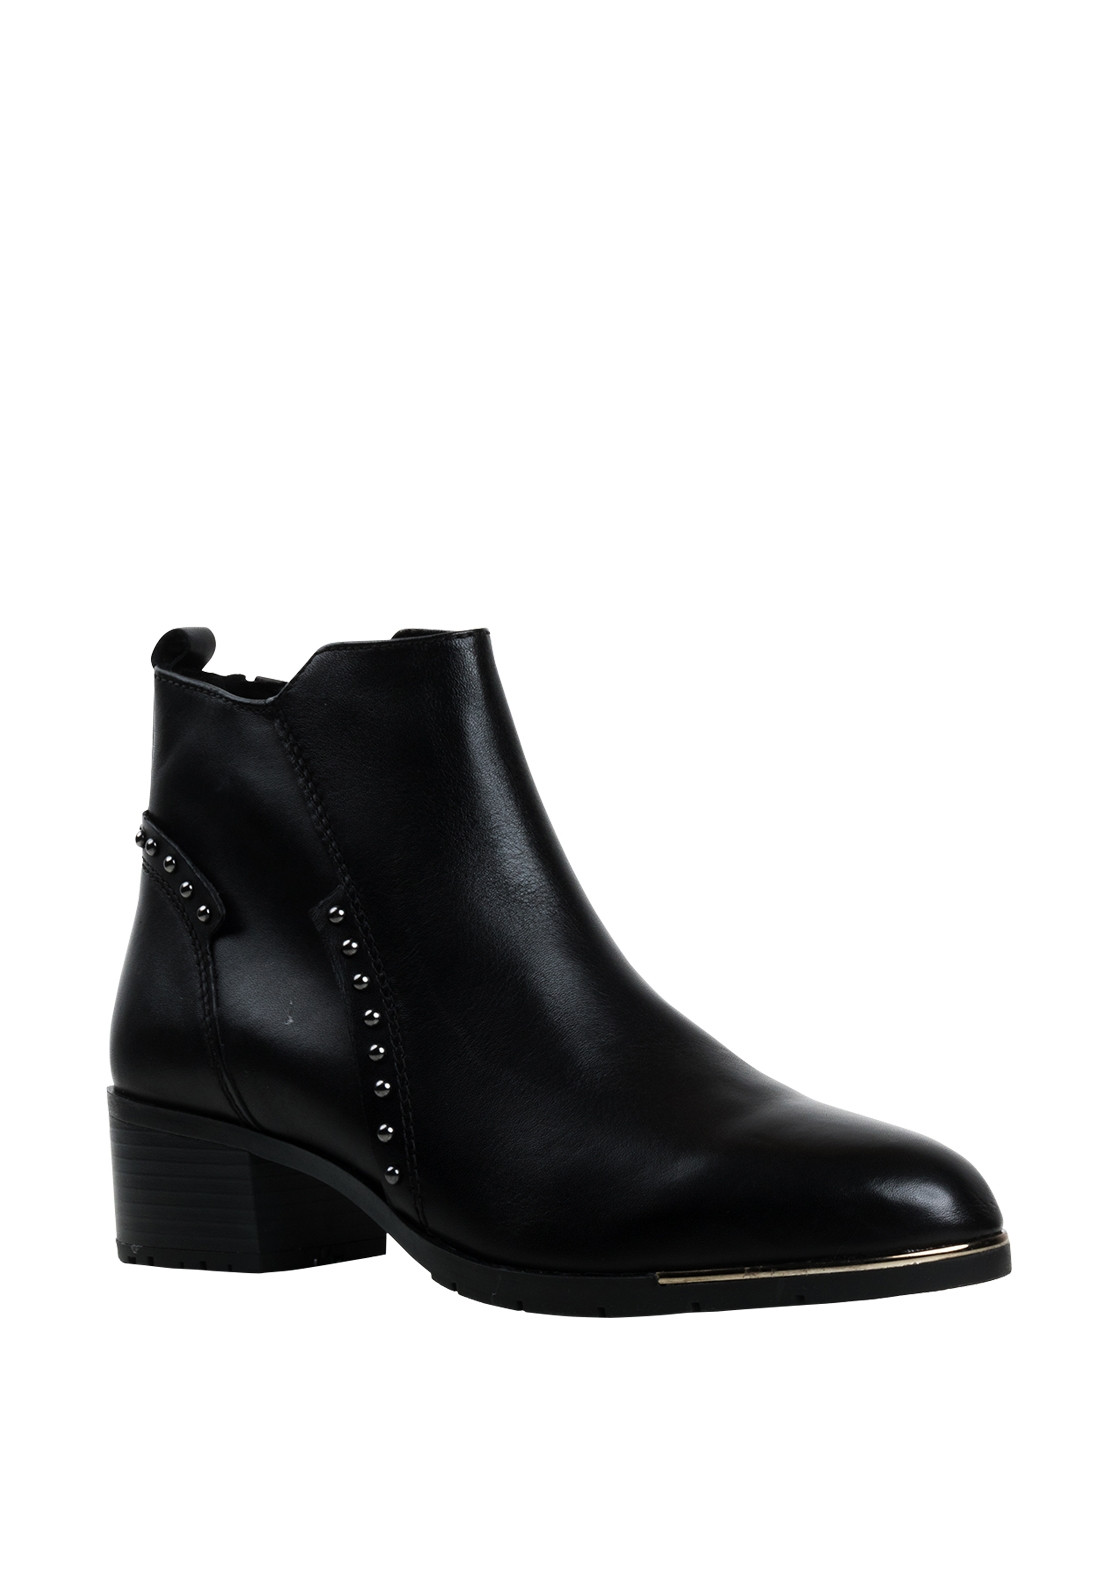 Marco Tozzi Womens Studded Boots, Black